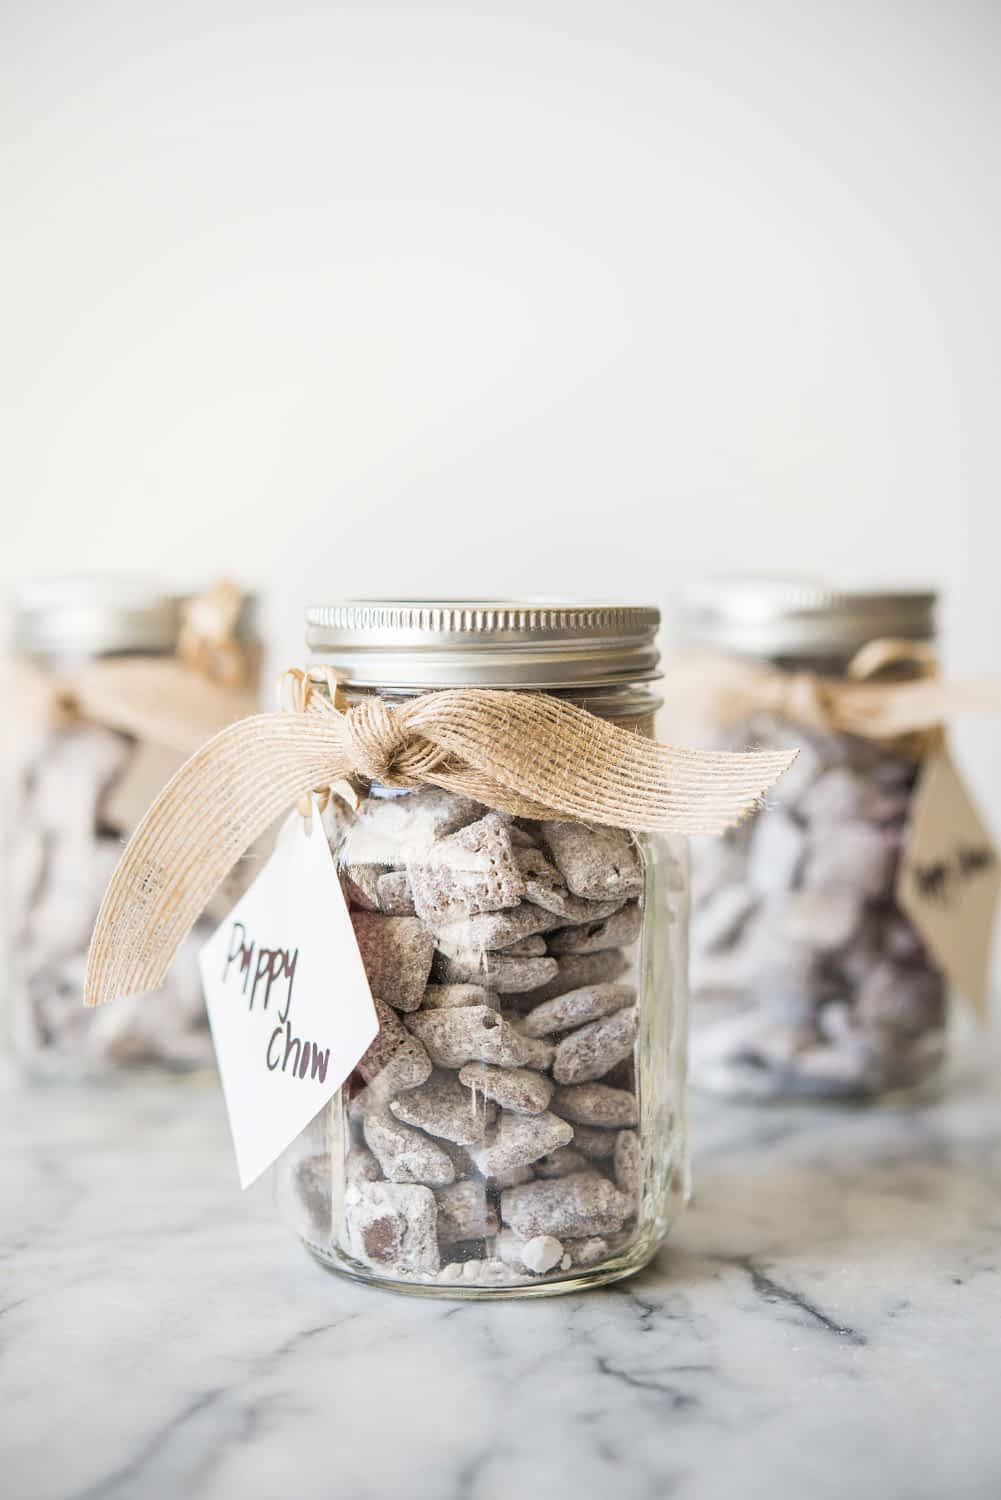 puppy chow in a mason jar with a bow tied around it and a gift tag that says 'puppy chow'